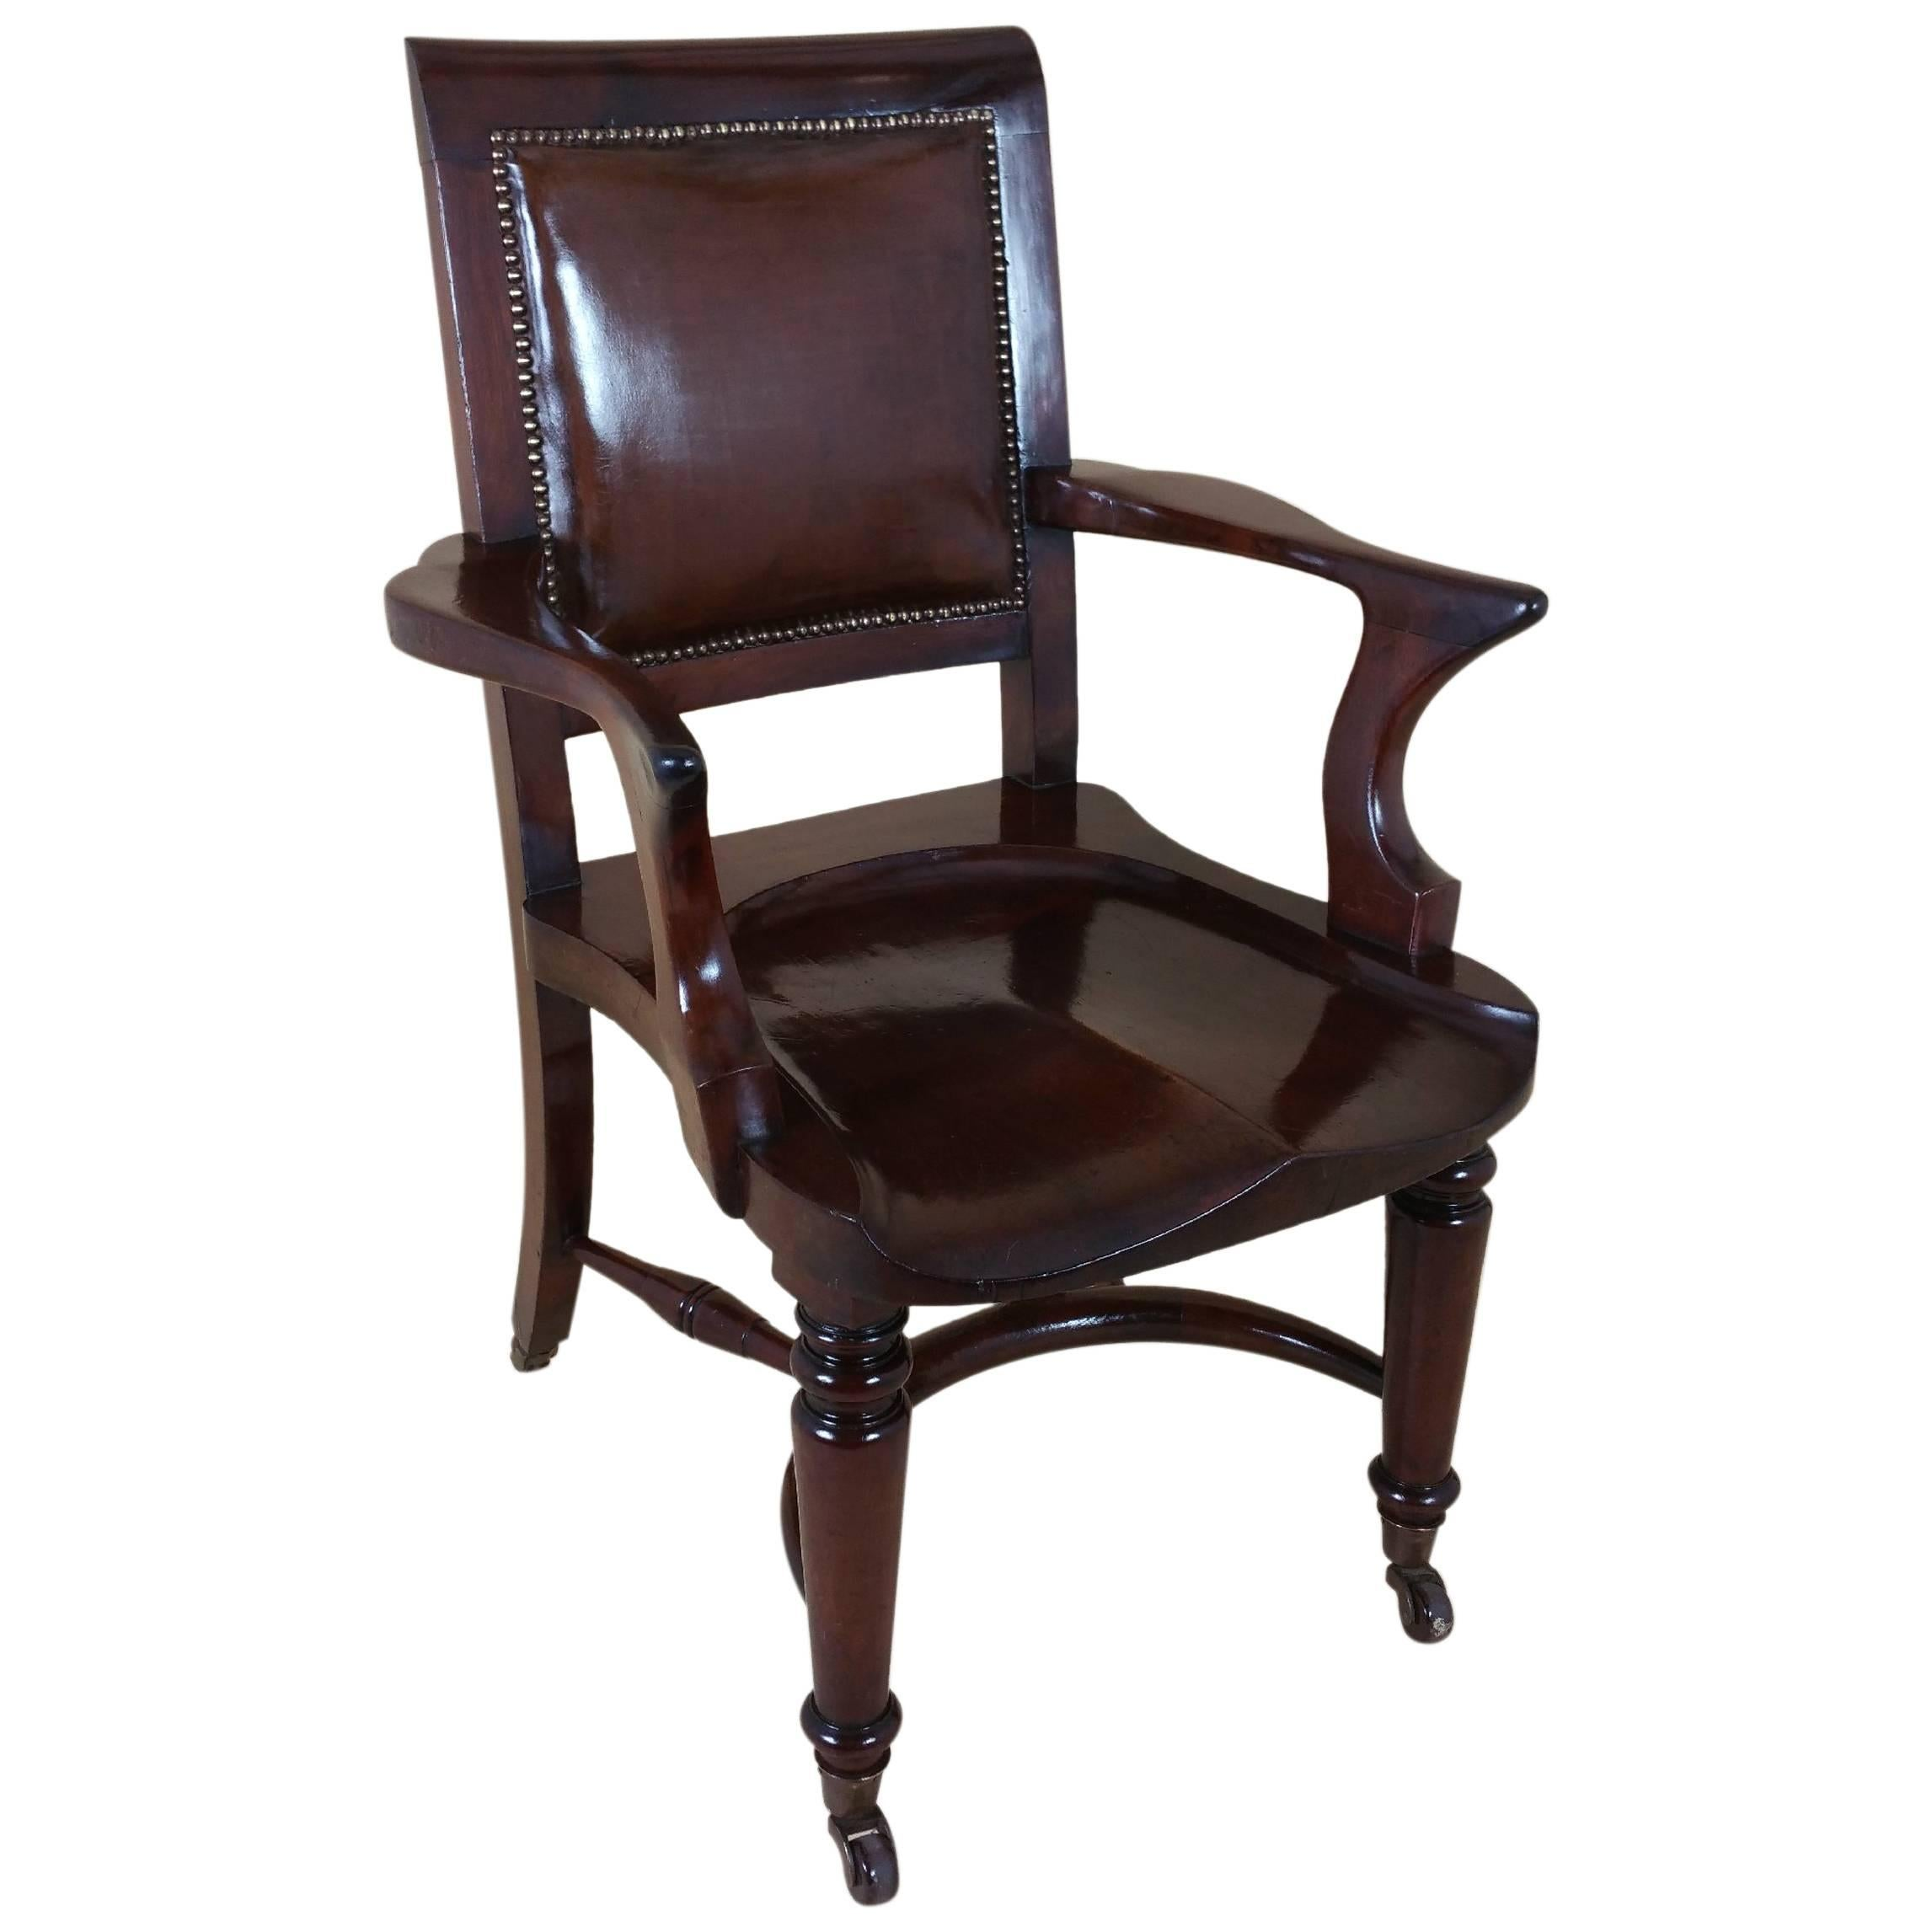 Desk Seat Victorian Mahogany Solid Seat Desk Chair With Leather Back